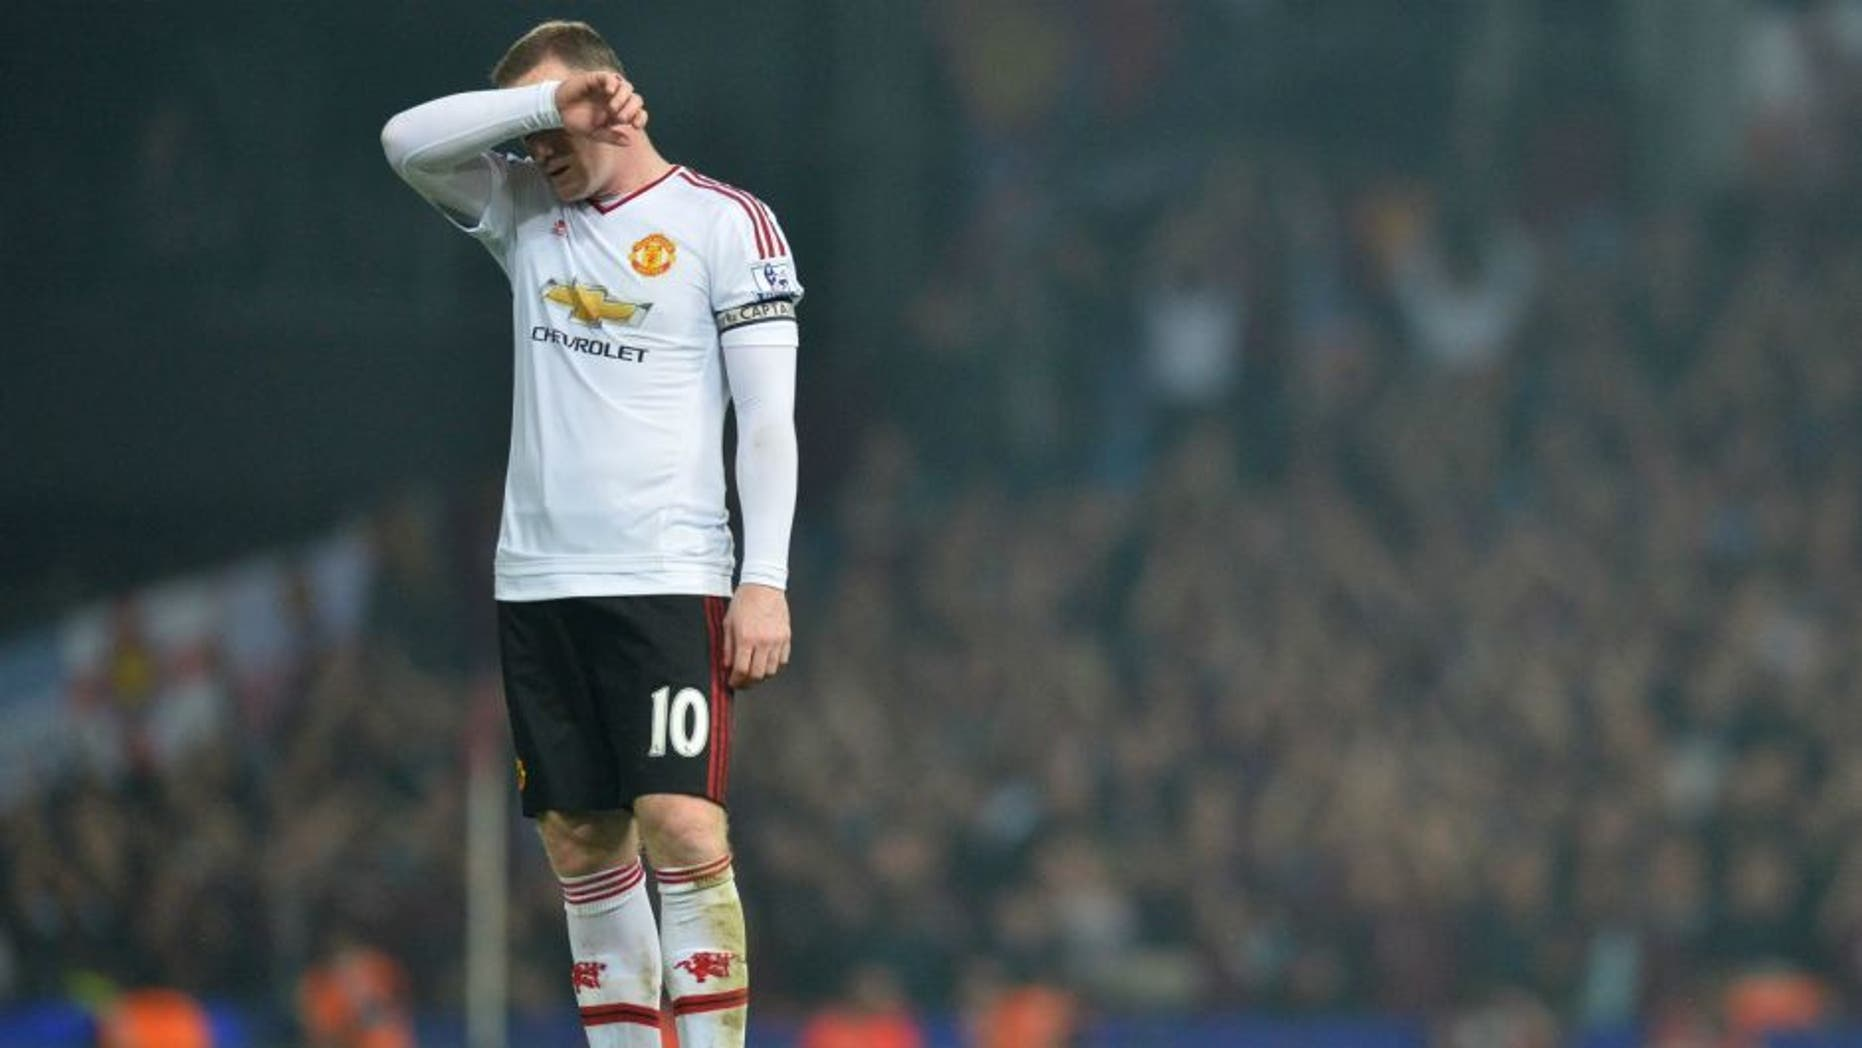 Manchester United's English striker Wayne Rooney reacts after losing the English Premier League football match between West Ham United and Manchester United at The Boleyn Ground in Upton Park, in east London on May 10, 2016. / AFP / GLYN KIRK / RESTRICTED TO EDITORIAL USE. No use with unauthorized audio, video, data, fixture lists, club/league logos or 'live' services. Online in-match use limited to 75 images, no video emulation. No use in betting, games or single club/league/player publications. / (Photo credit should read GLYN KIRK/AFP/Getty Images)